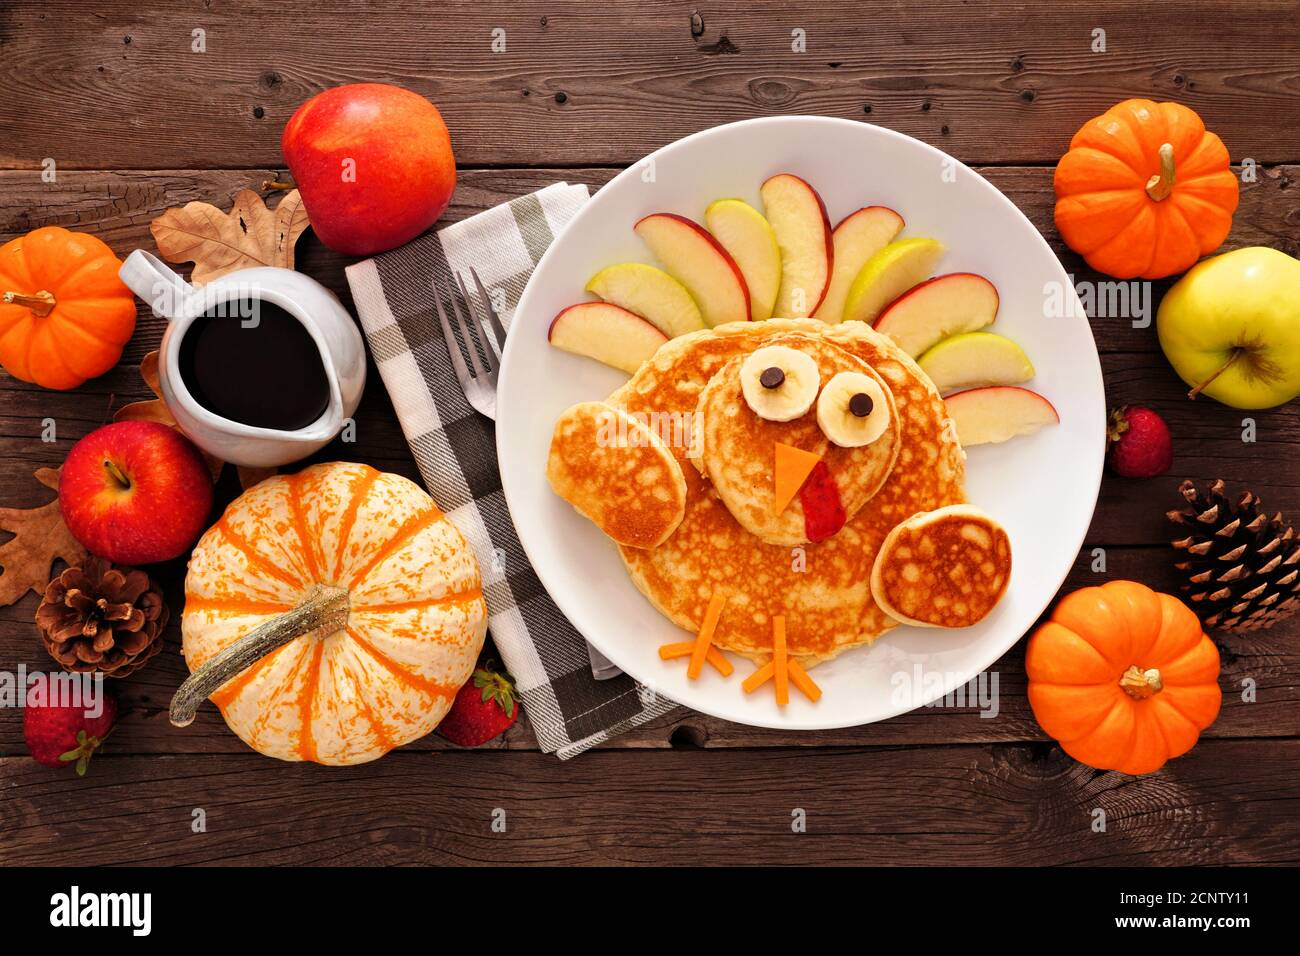 Thanksgiving breakfast table scene with turkey pancakes. Top view against a rustic wood background. Stock Photo